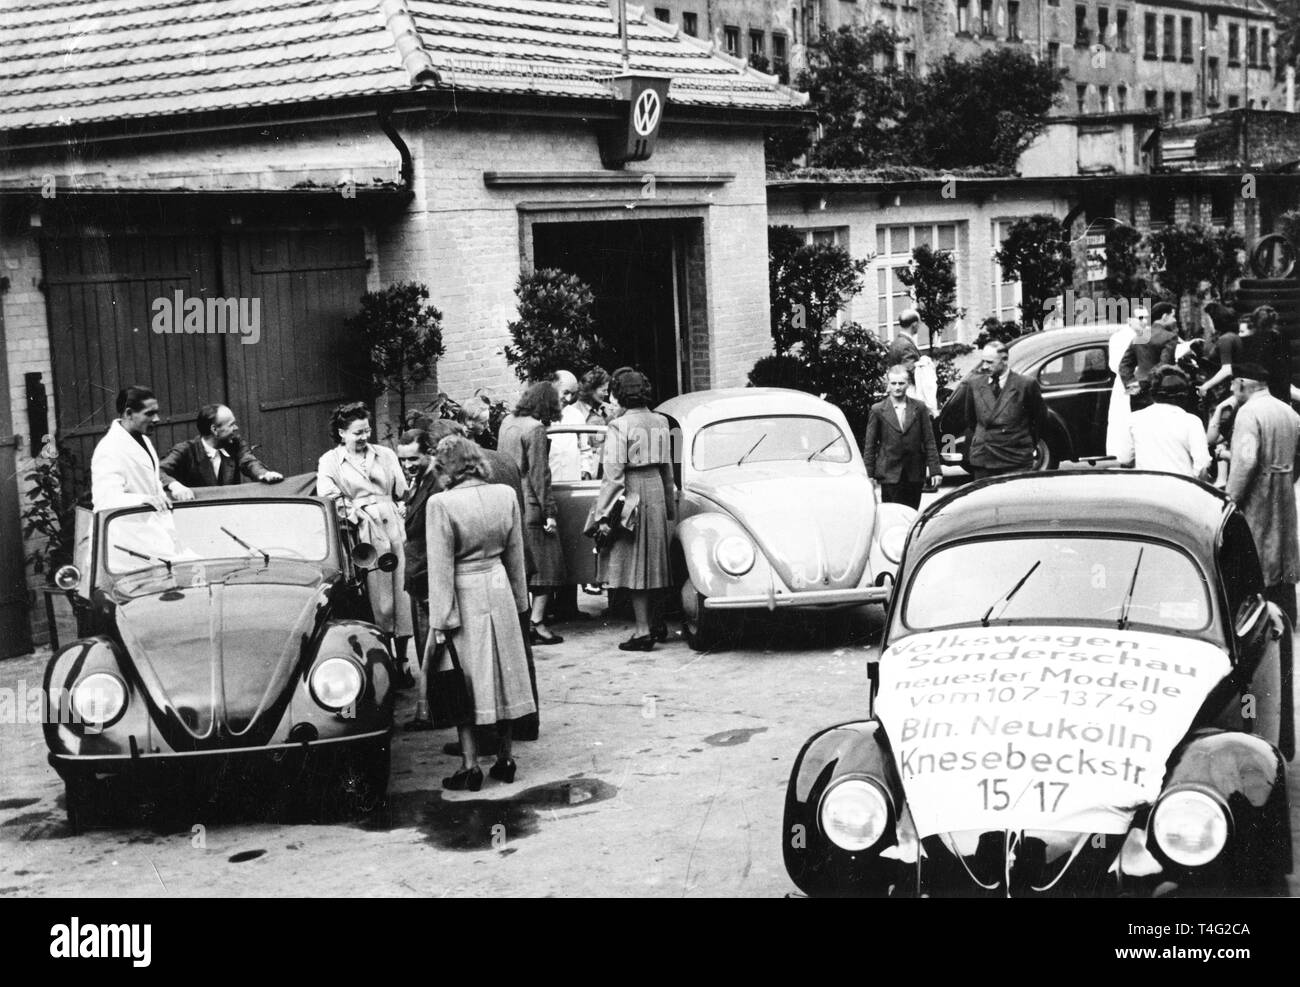 A special exhibition of VW automobiles on Knesebeck-Strasse in West Berlin, July 1949. Photo: Agentur Voller Ernst - NO WIRE SERVICE | usage worldwide - Stock Image